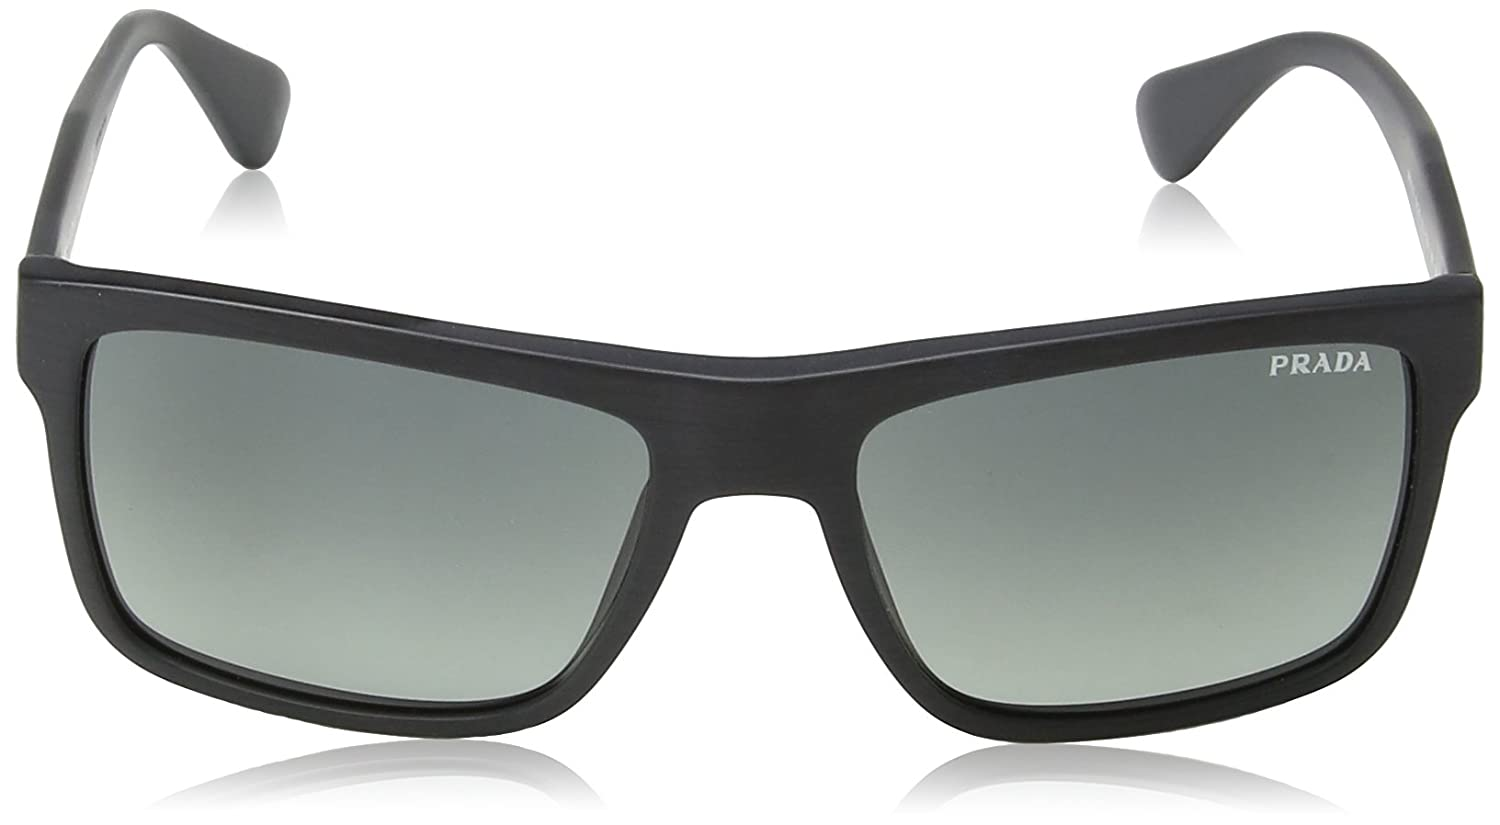 55263be7cc4c Amazon.com  Prada Men s 0PR 01SS Brushed Matte Black Light Grey Gradient  Dark Grey  Clothing